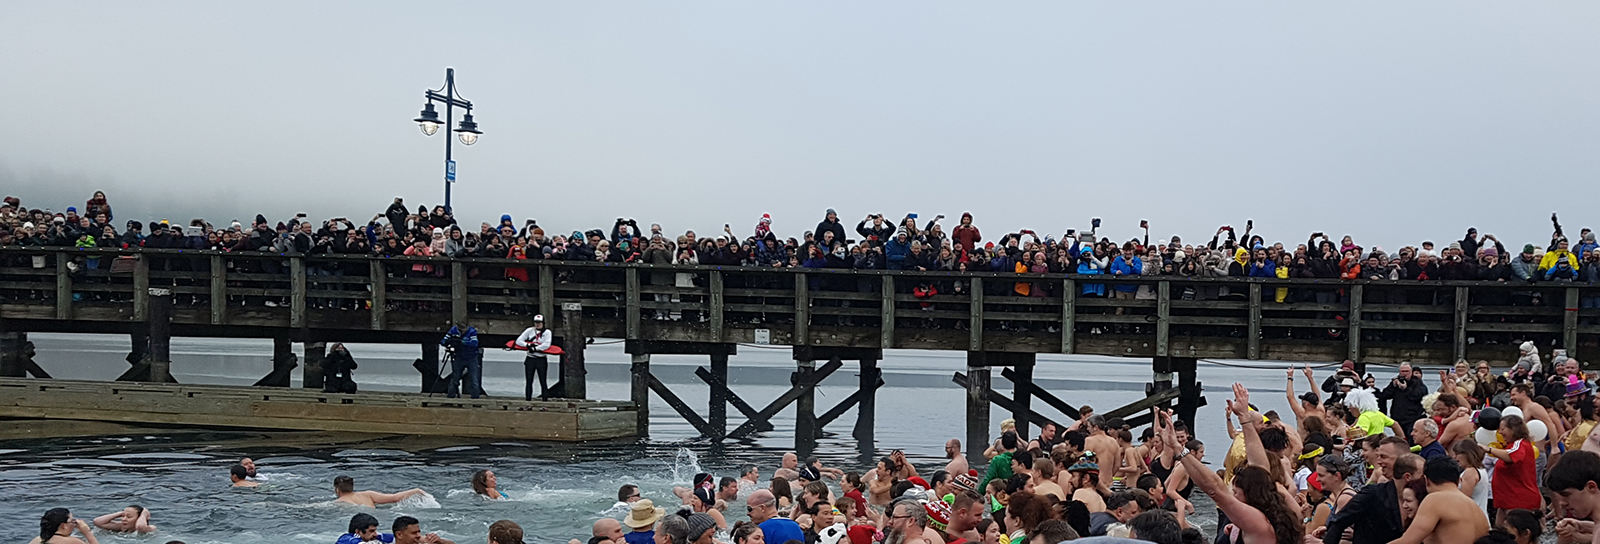 The annual penguin plunge